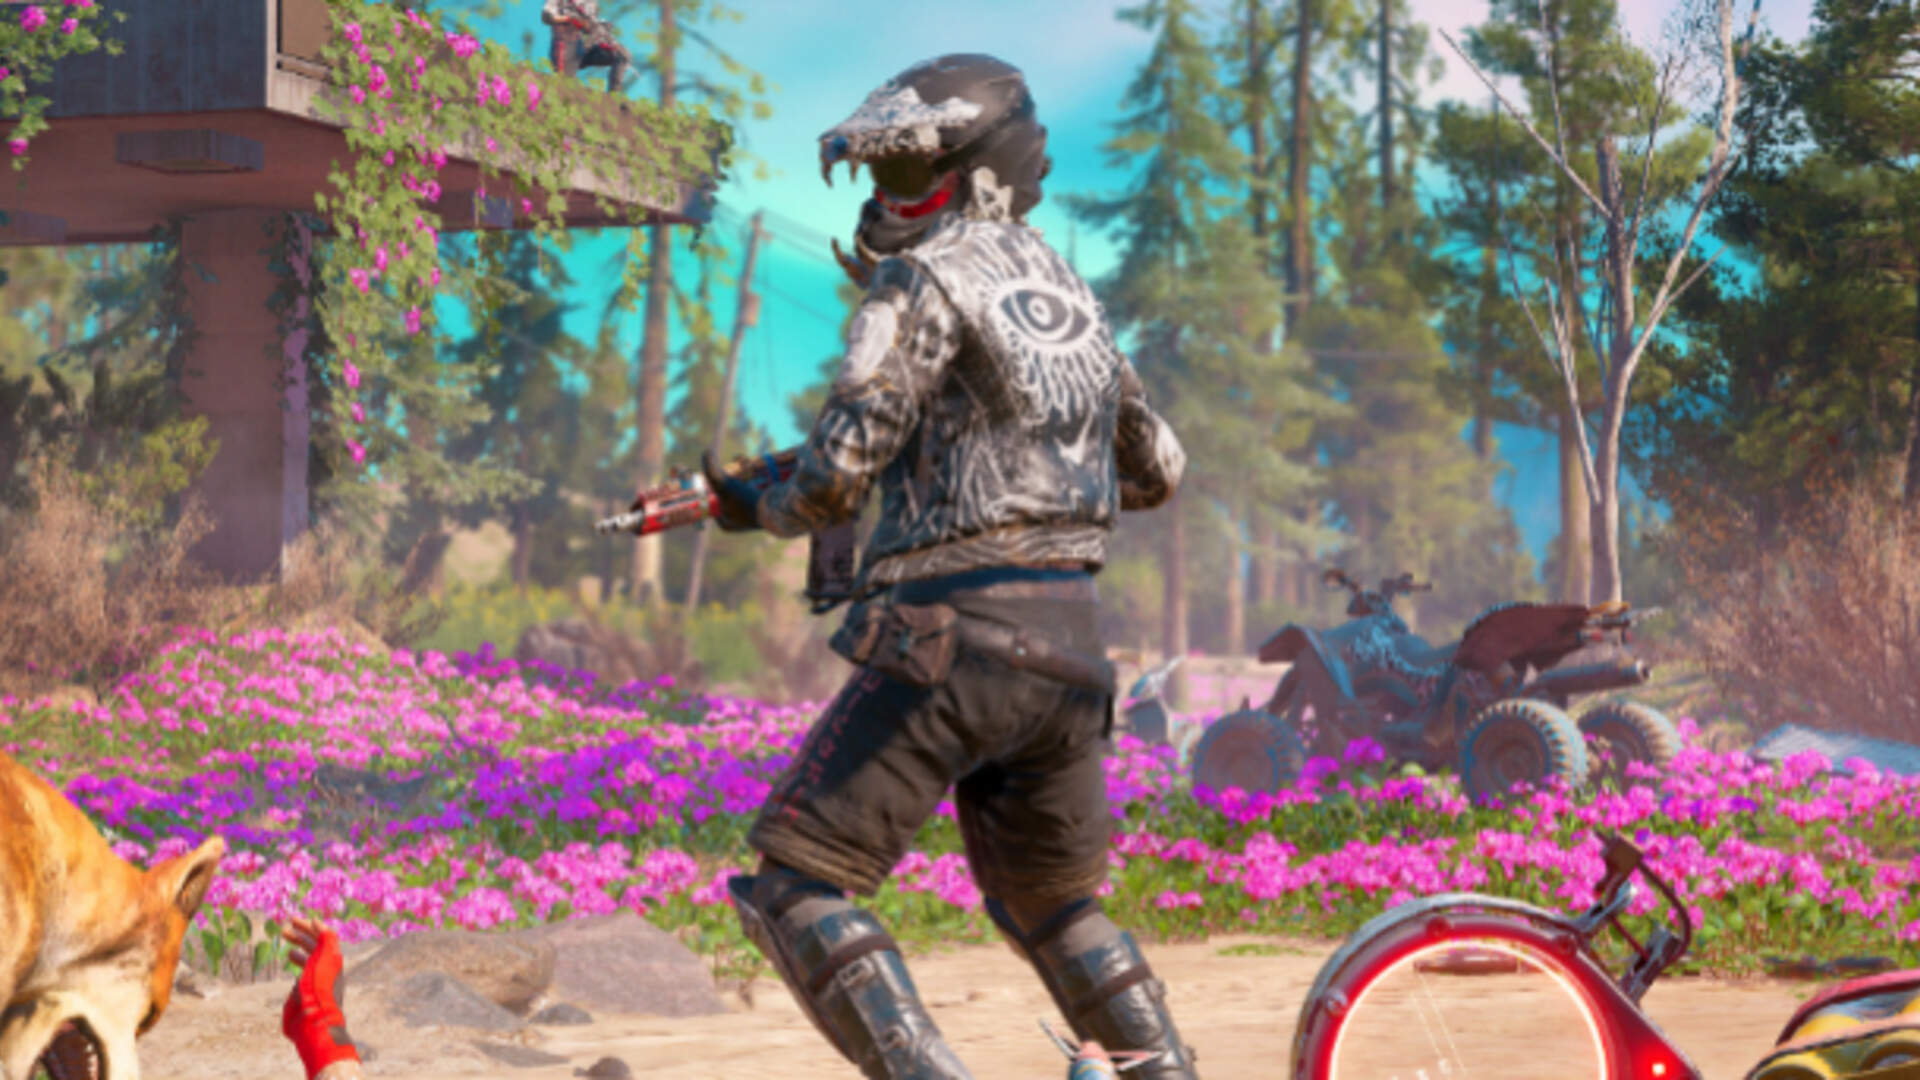 Far Cry New Dawn Review Roundup, Release Date, Gameplay, Trailer, Preview Impressions - Everything we Know